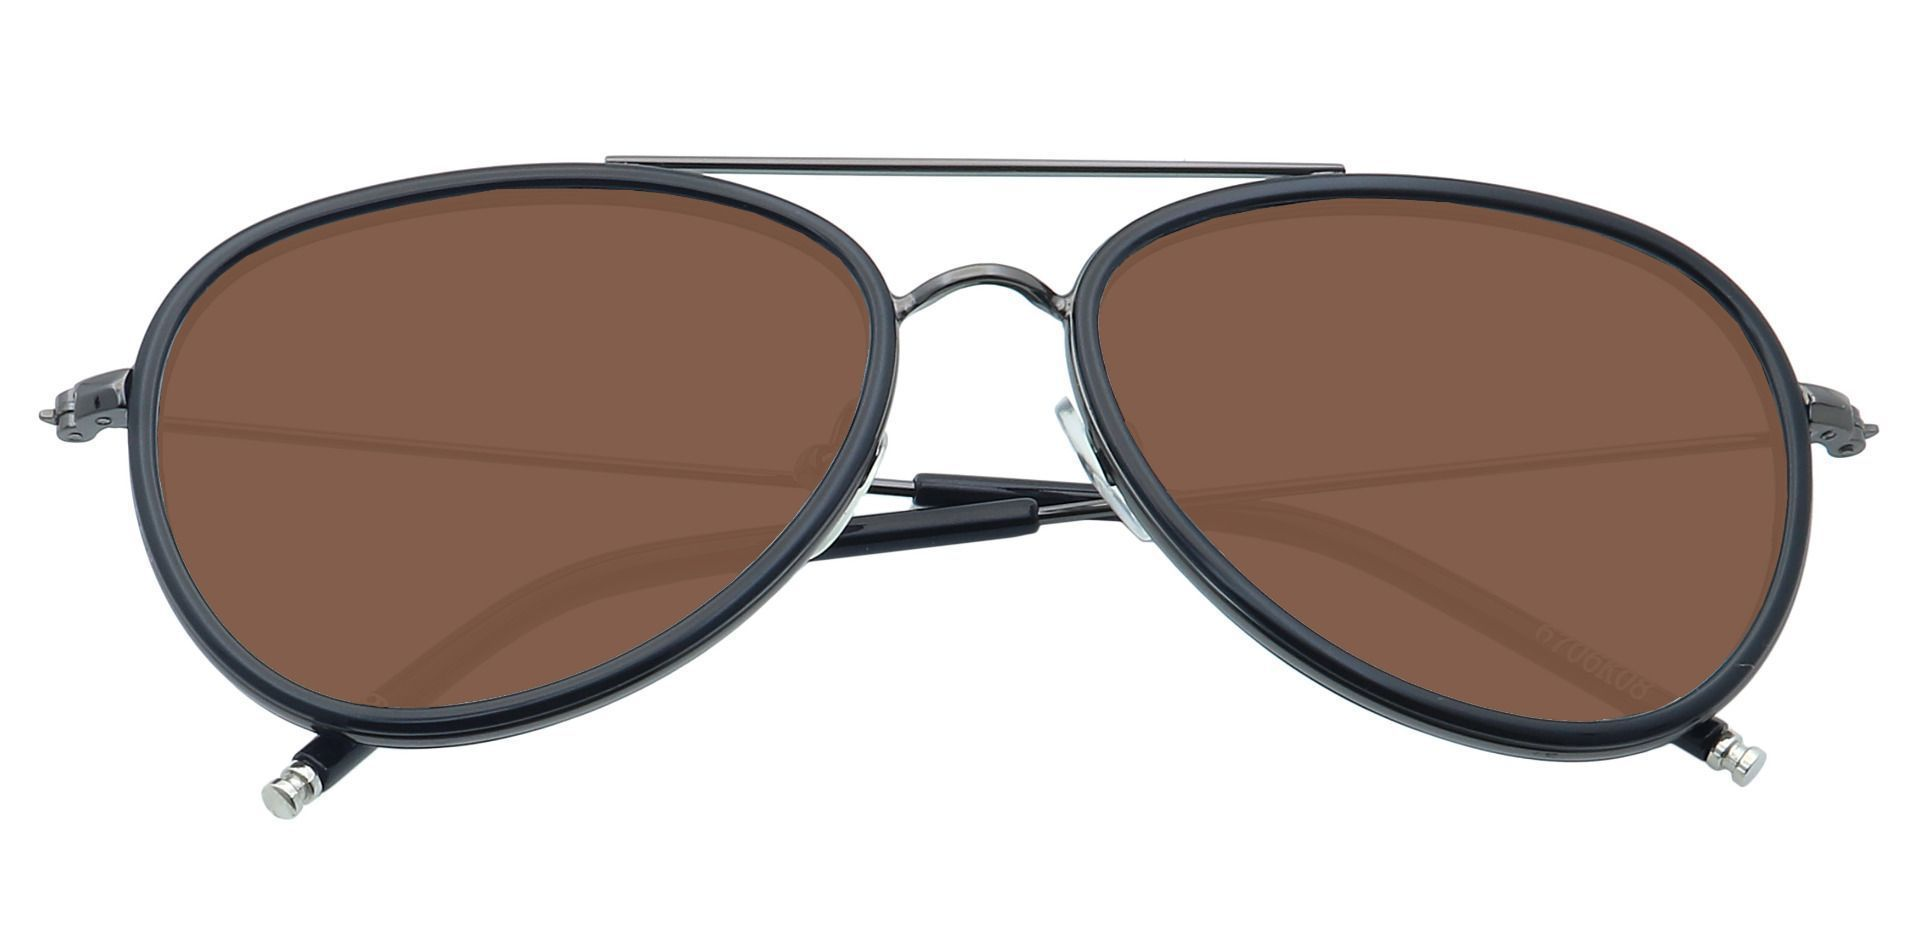 Ace Aviator Single Vision Sunglasses - Black Frame With Brown Lenses